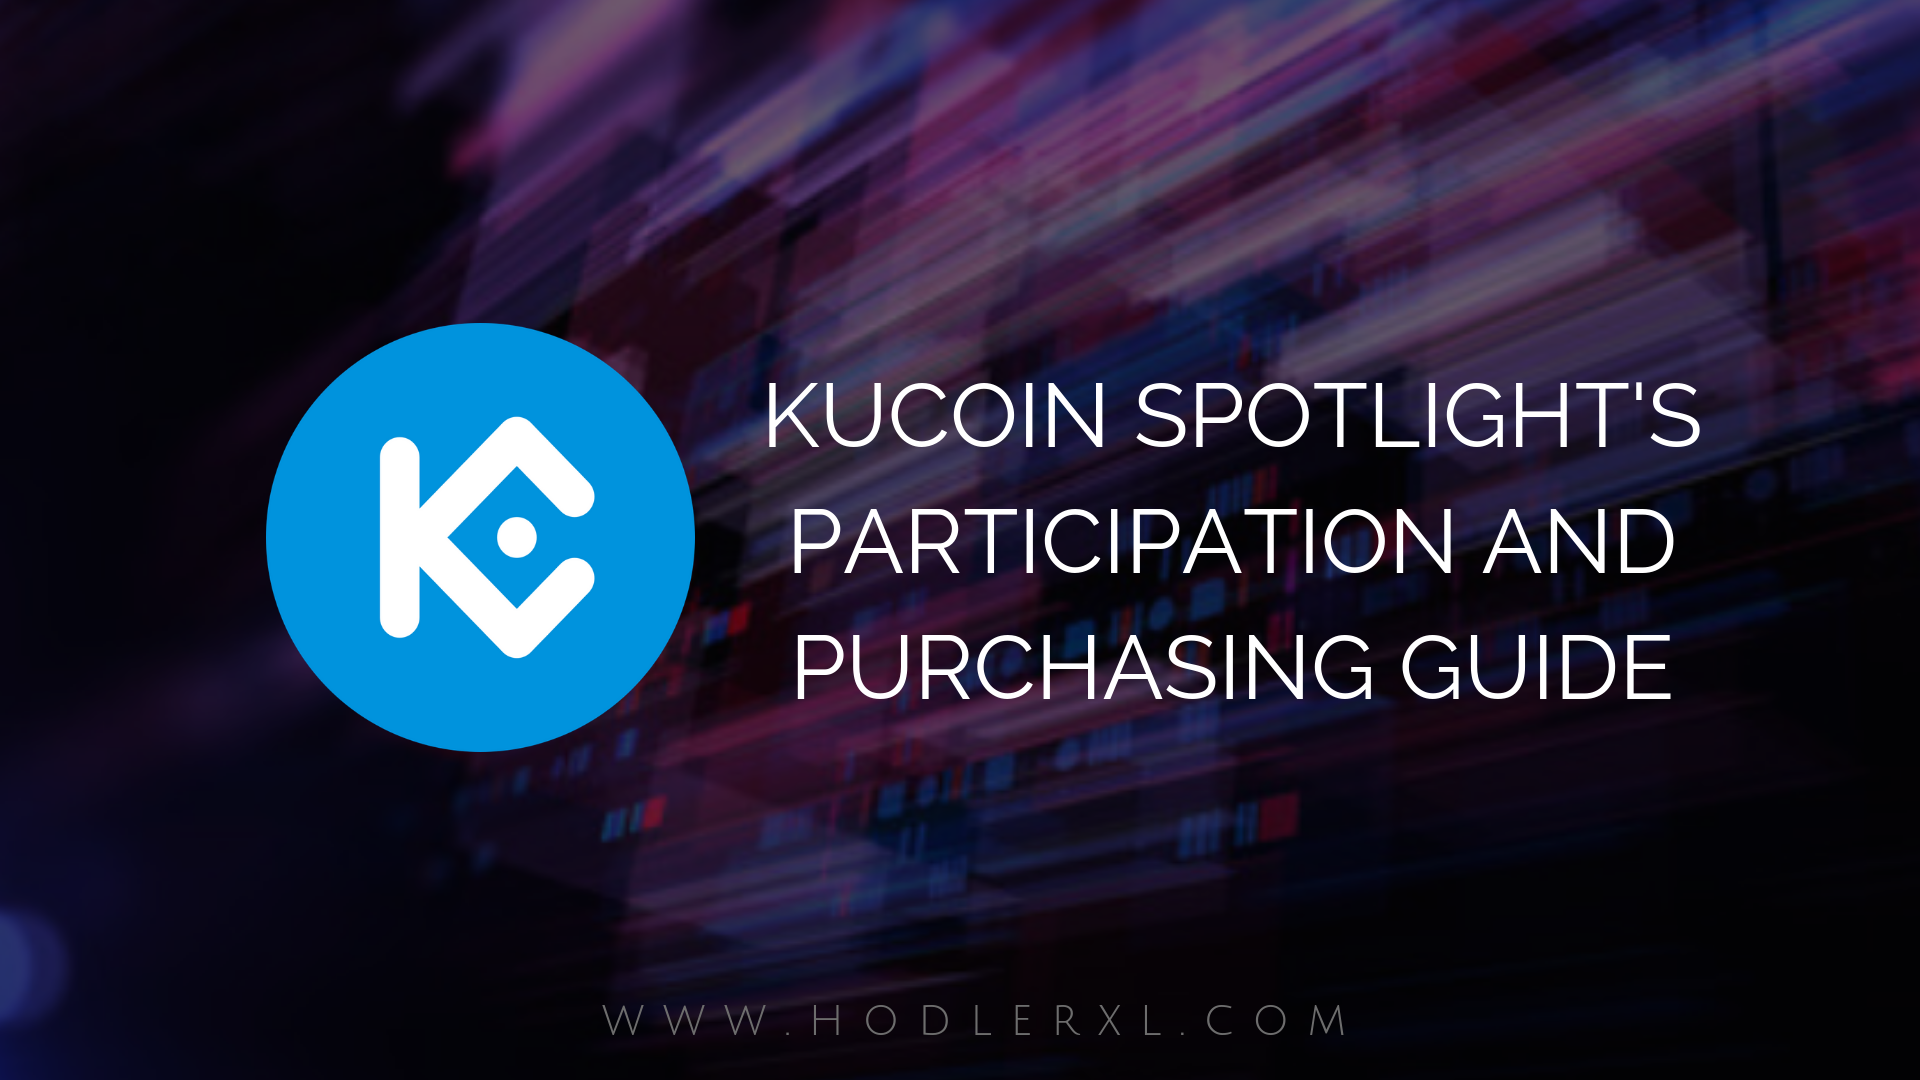 KuCoin Spotlight Projects Participation And Purchasing Guide